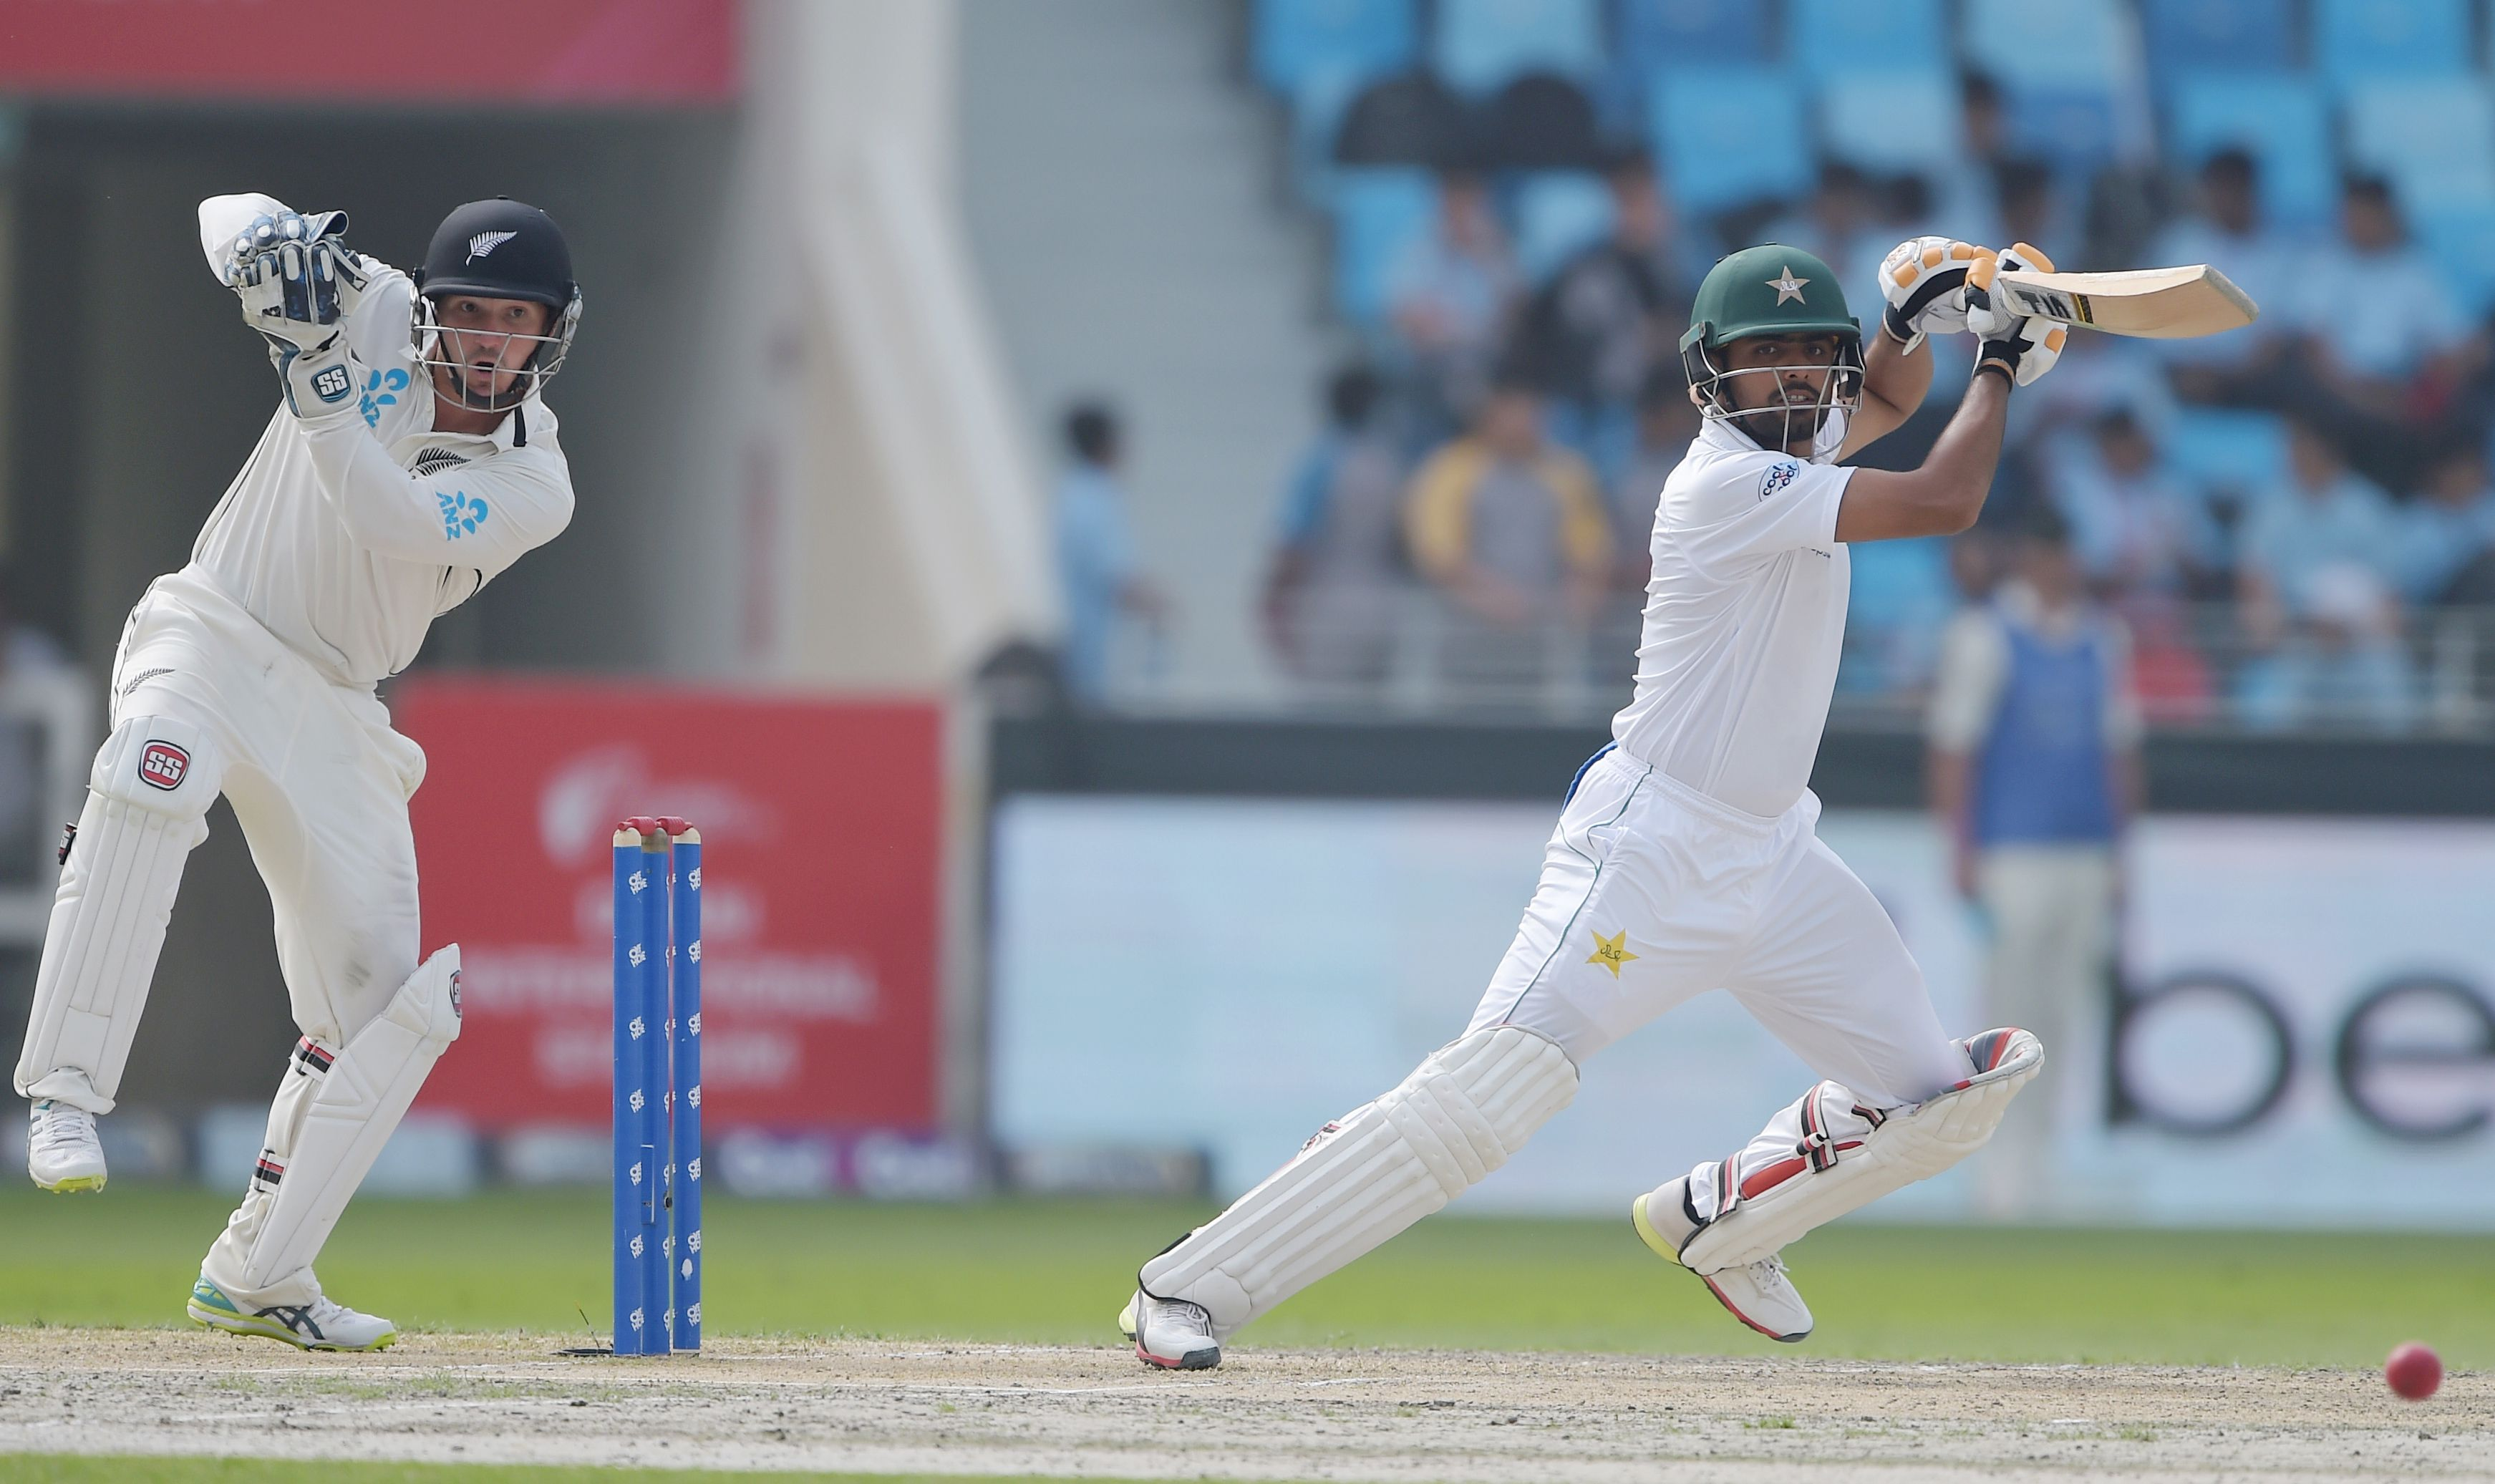 Babar Azam test batting